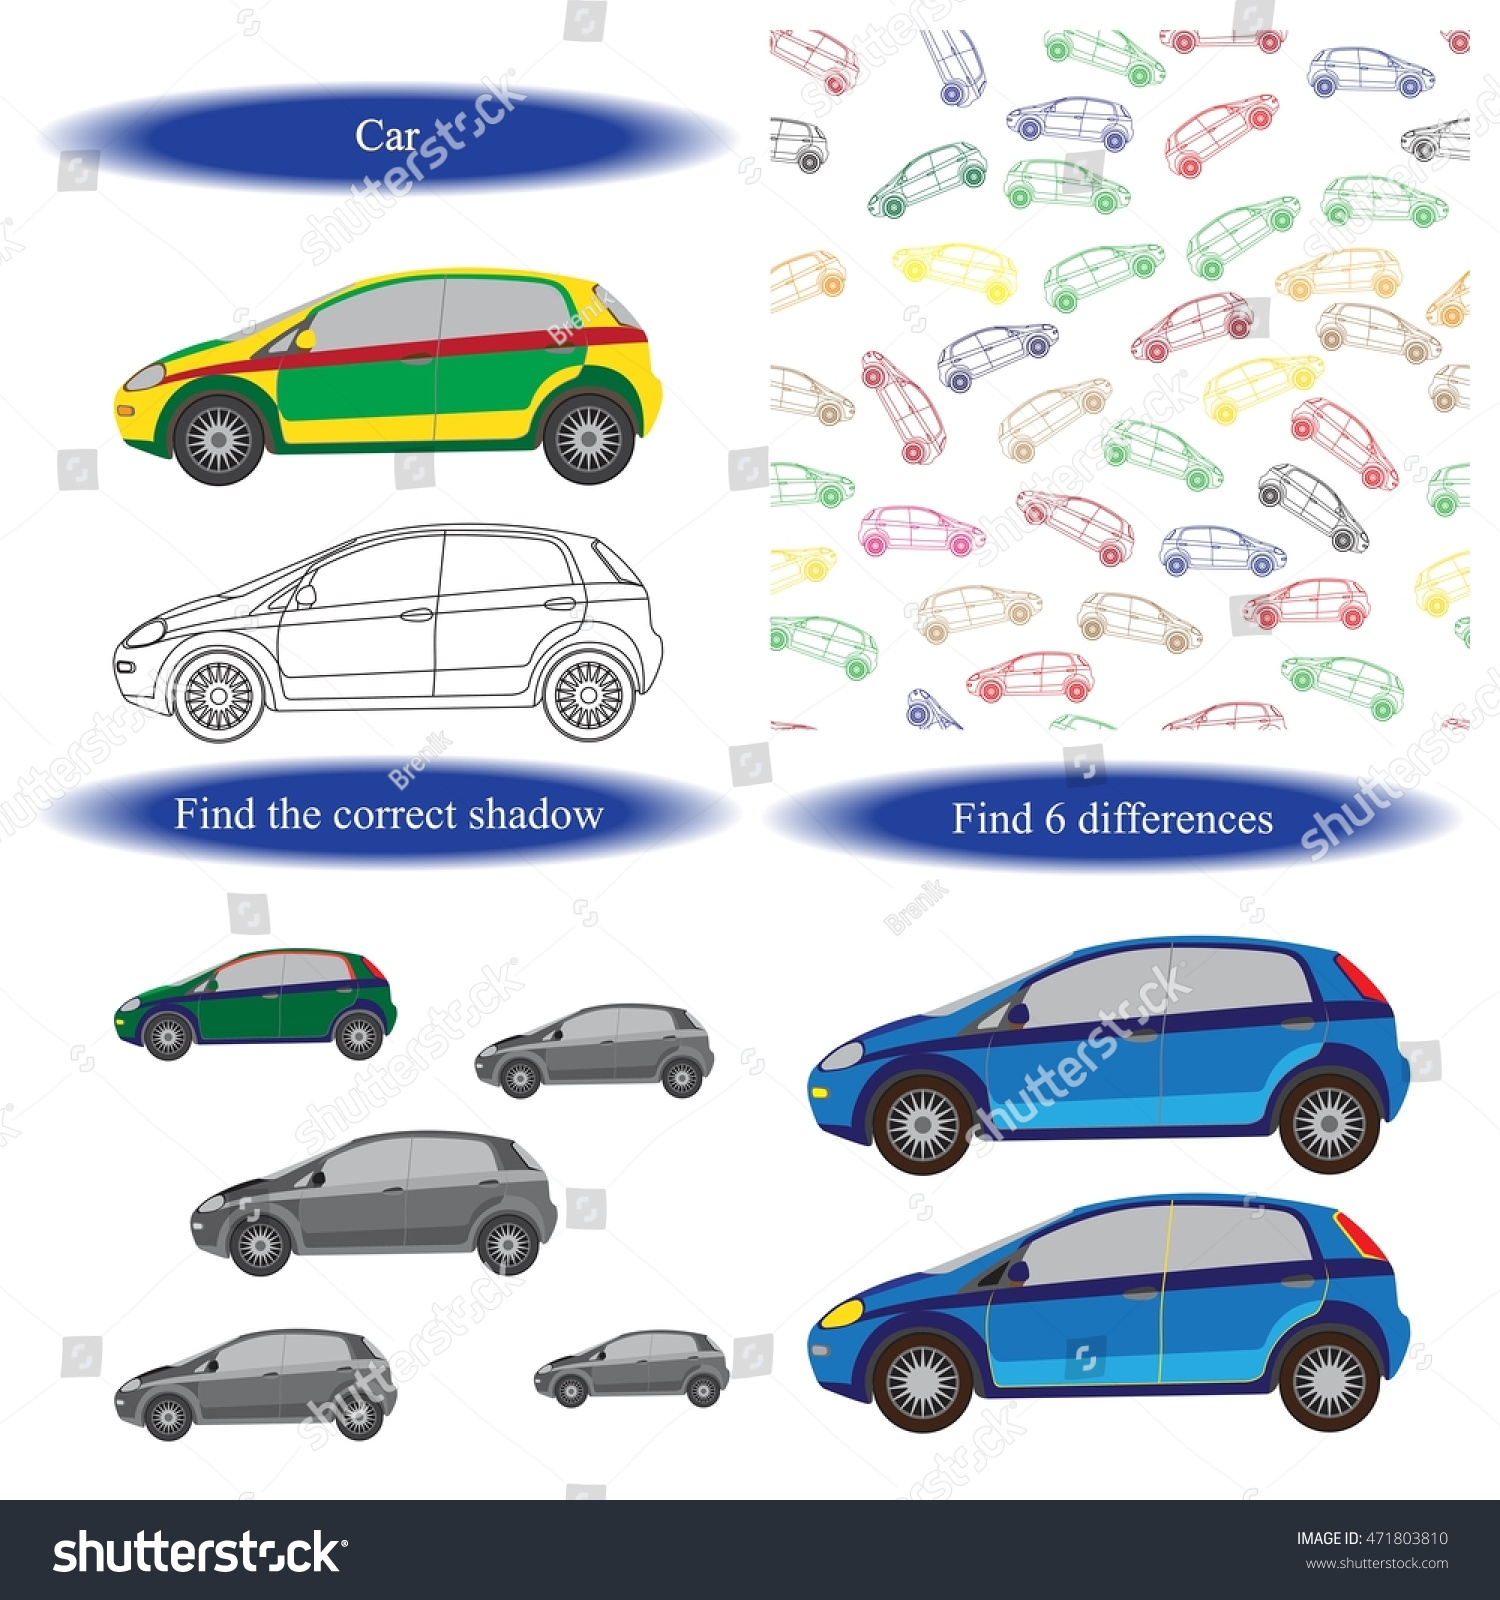 Car Coloring Book Find Differences For Children Background